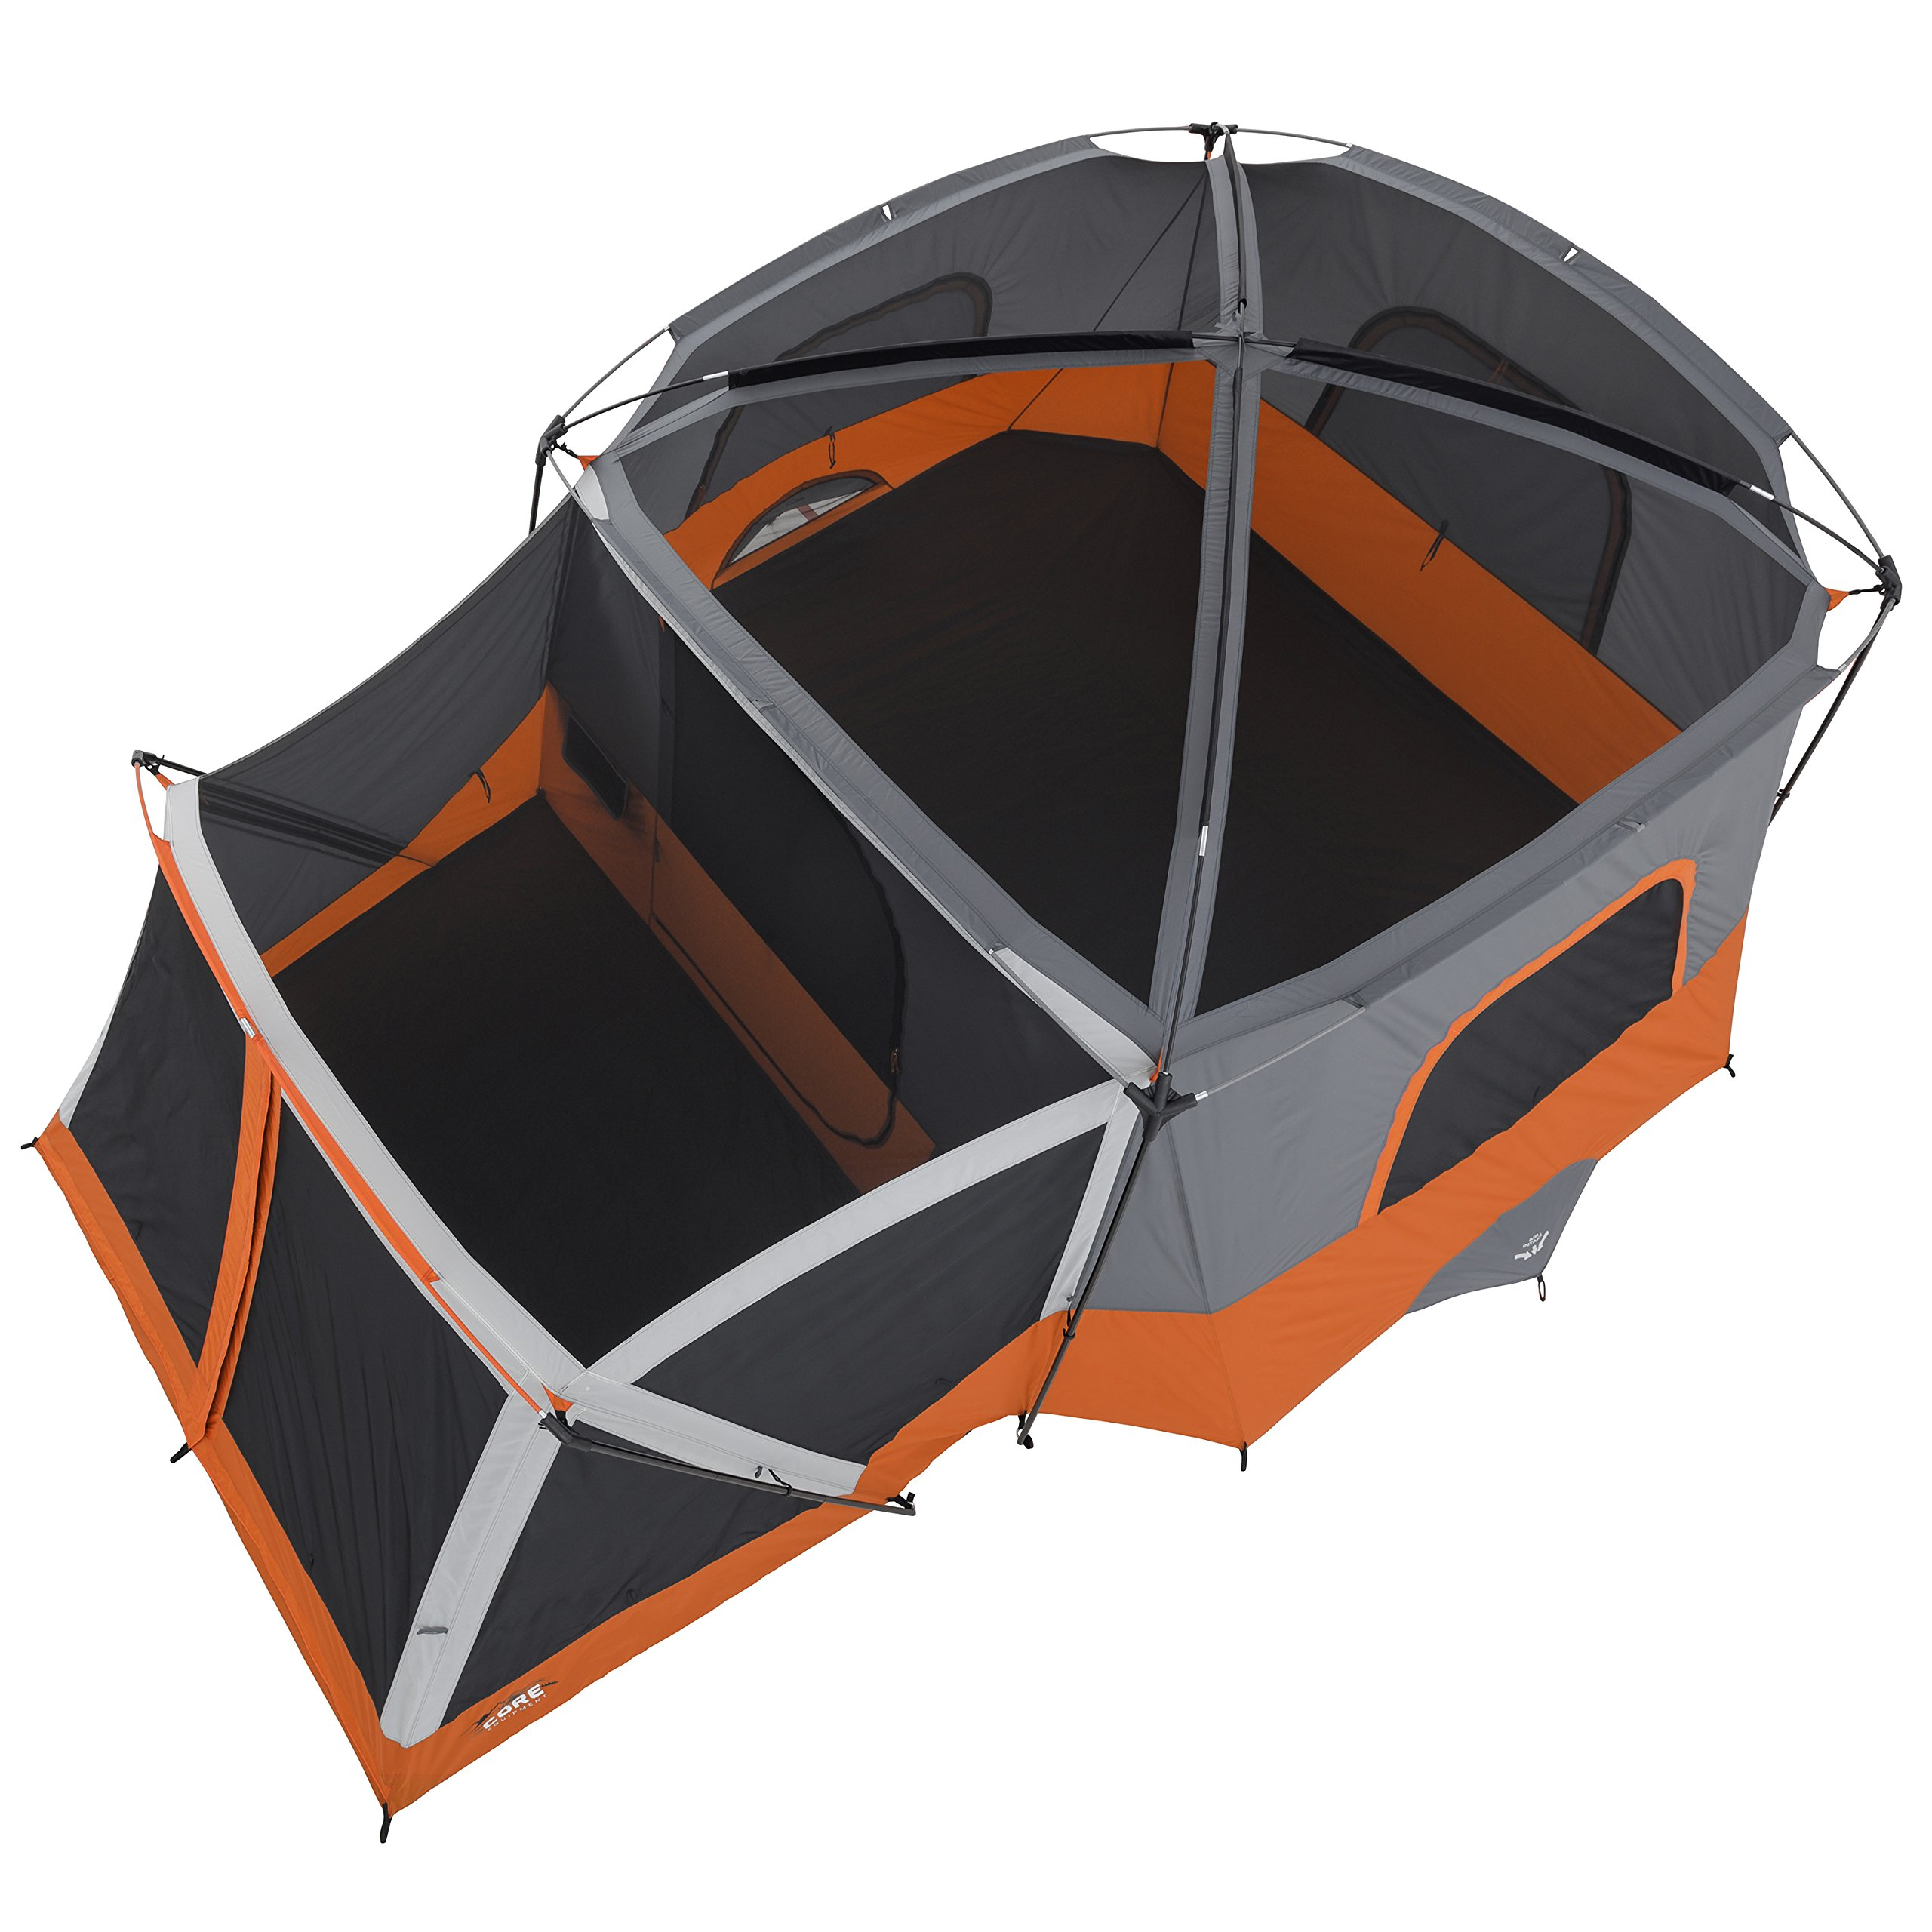 CORE 11 Person Cabin Tent with Screen Room - 17' x 12' by CORE Equipment (Image #4)